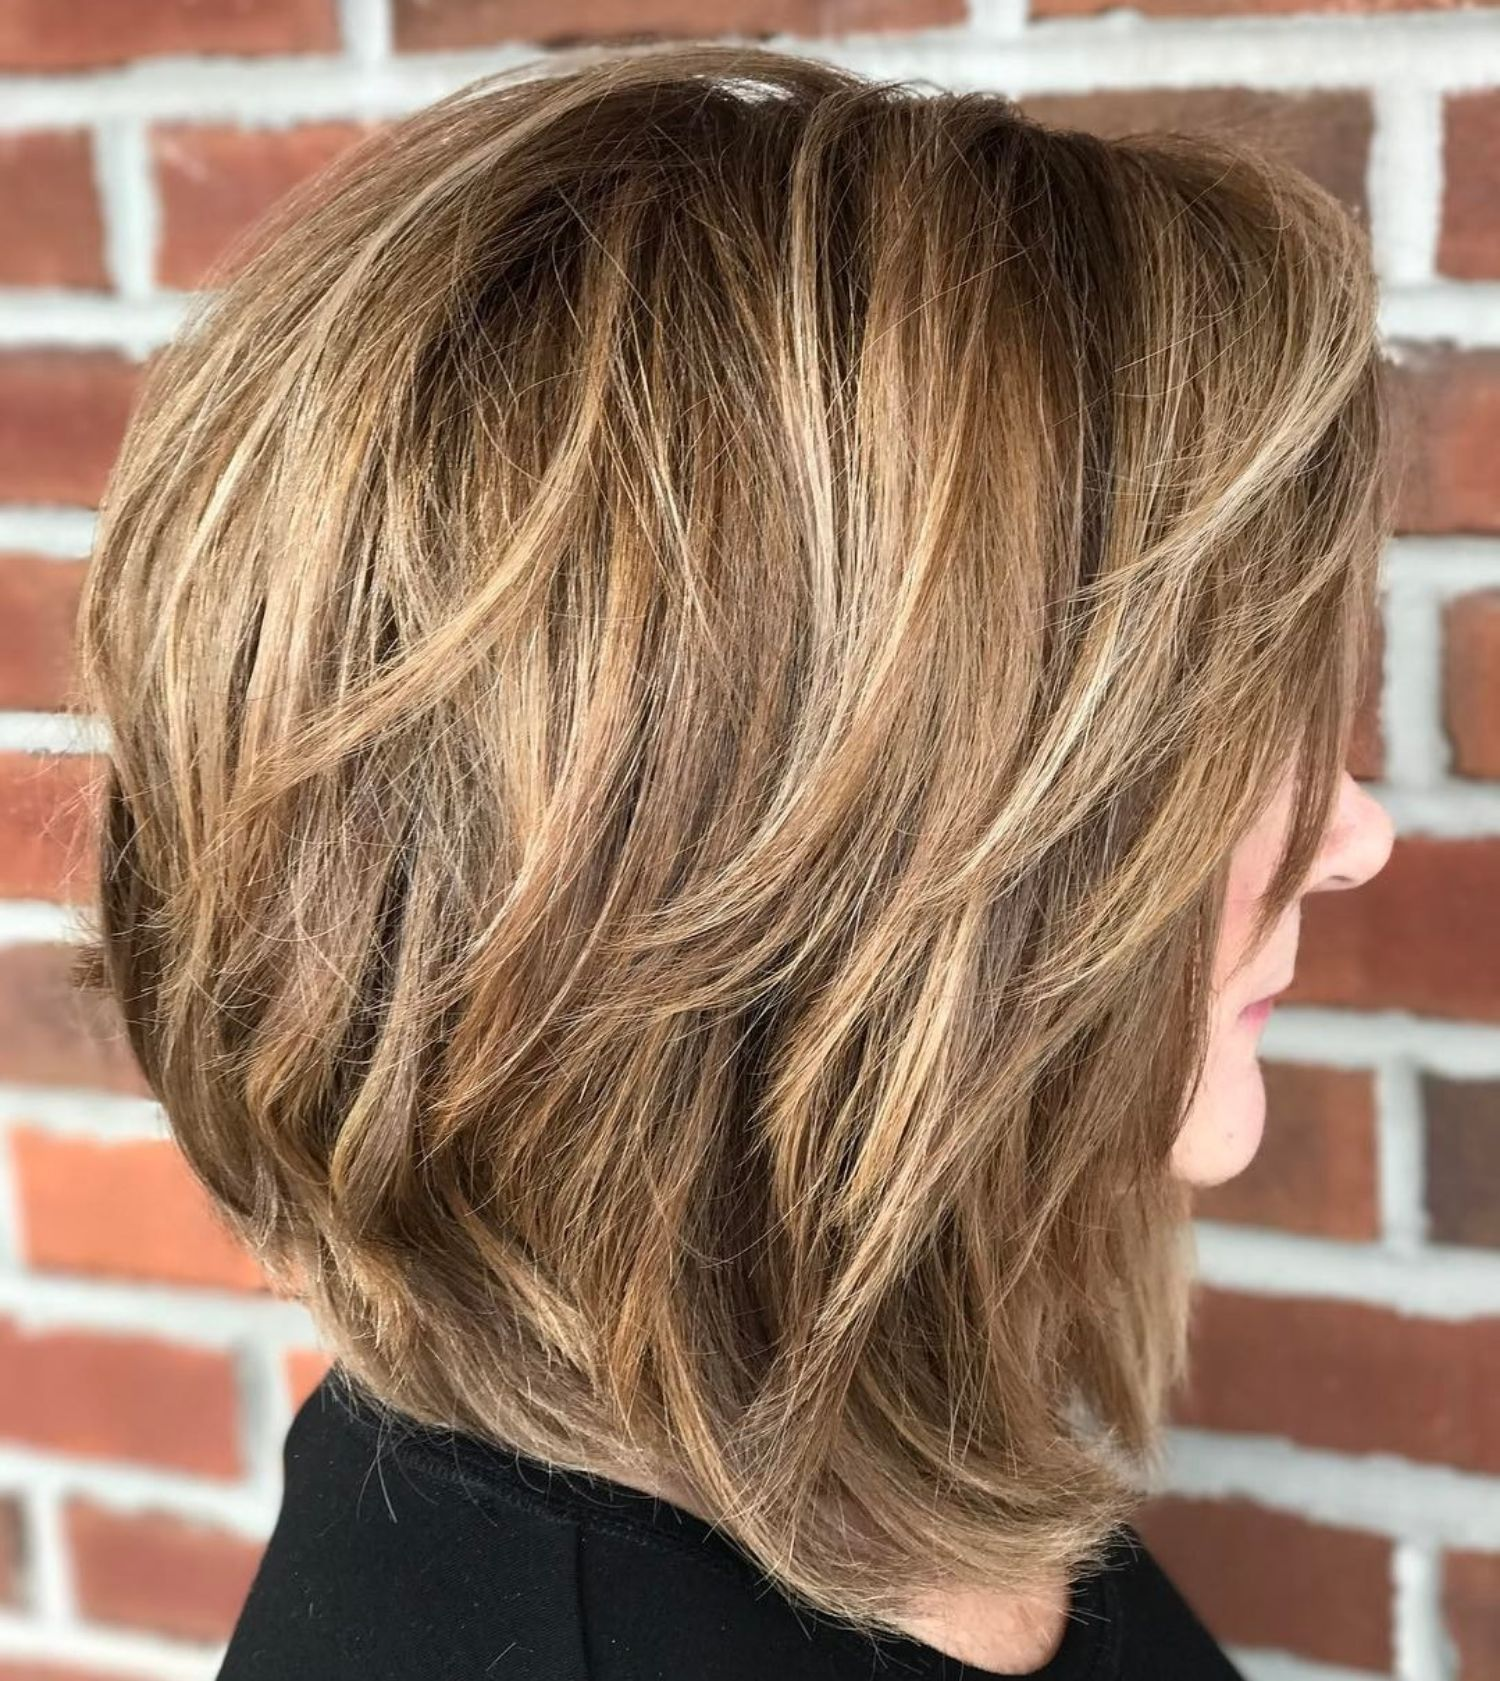 Honey Brown Bob With Medium Textured Layers Bob Hairstyles Thick Hair Styles Bob Hairstyles For Thick